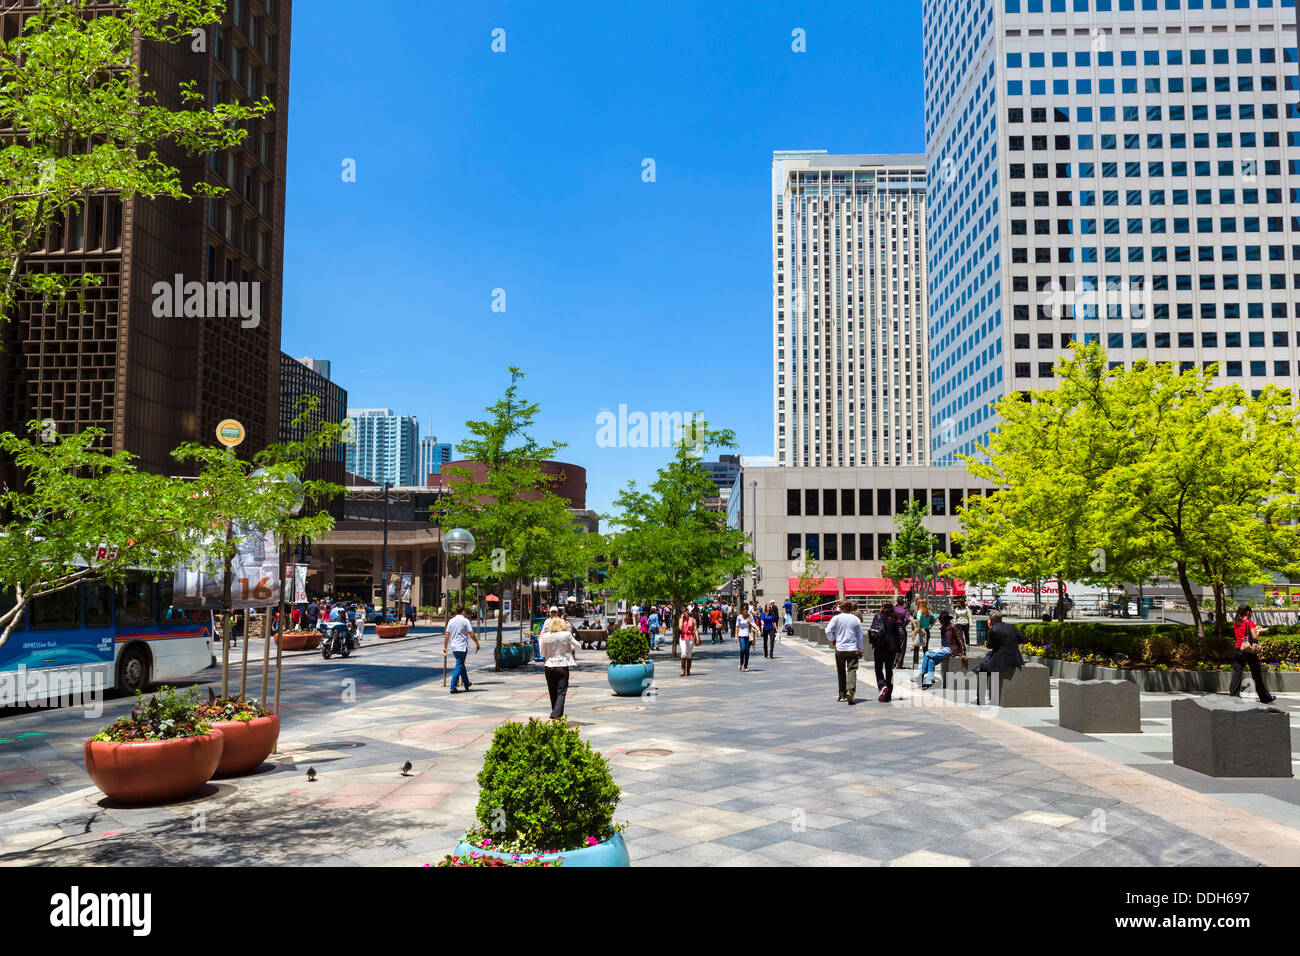 Hotels, shops and office buildings on the pedestrianized 16th Street Mall in downtown Denver, Colorado, USA - Stock Image